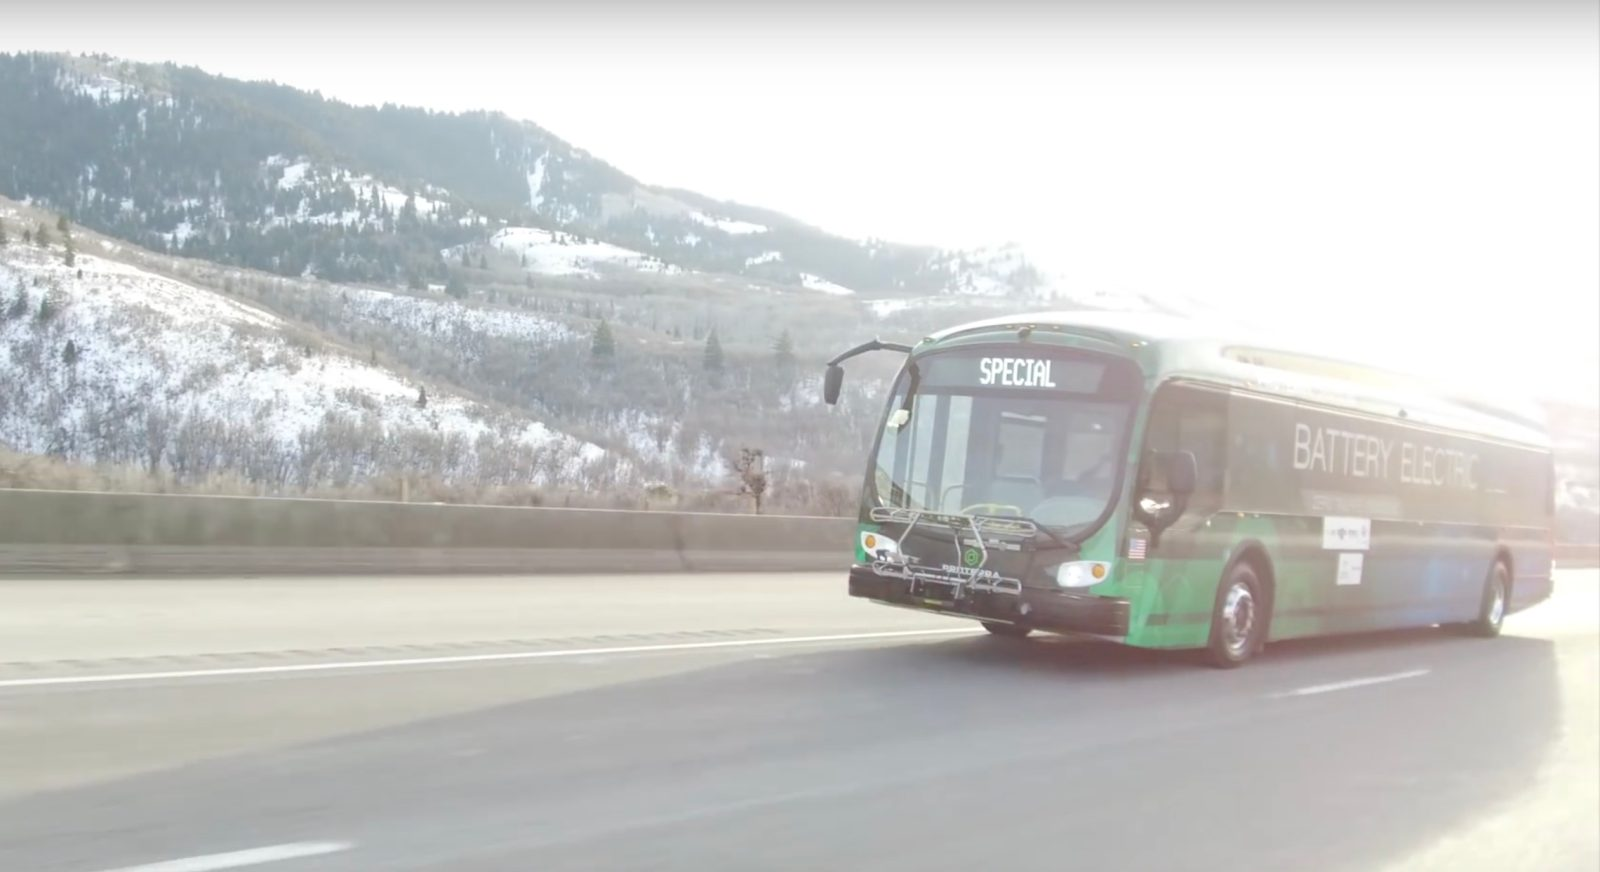 Proterra puts its all-electric dual motor bus to a tough test on Utah's steepest roads